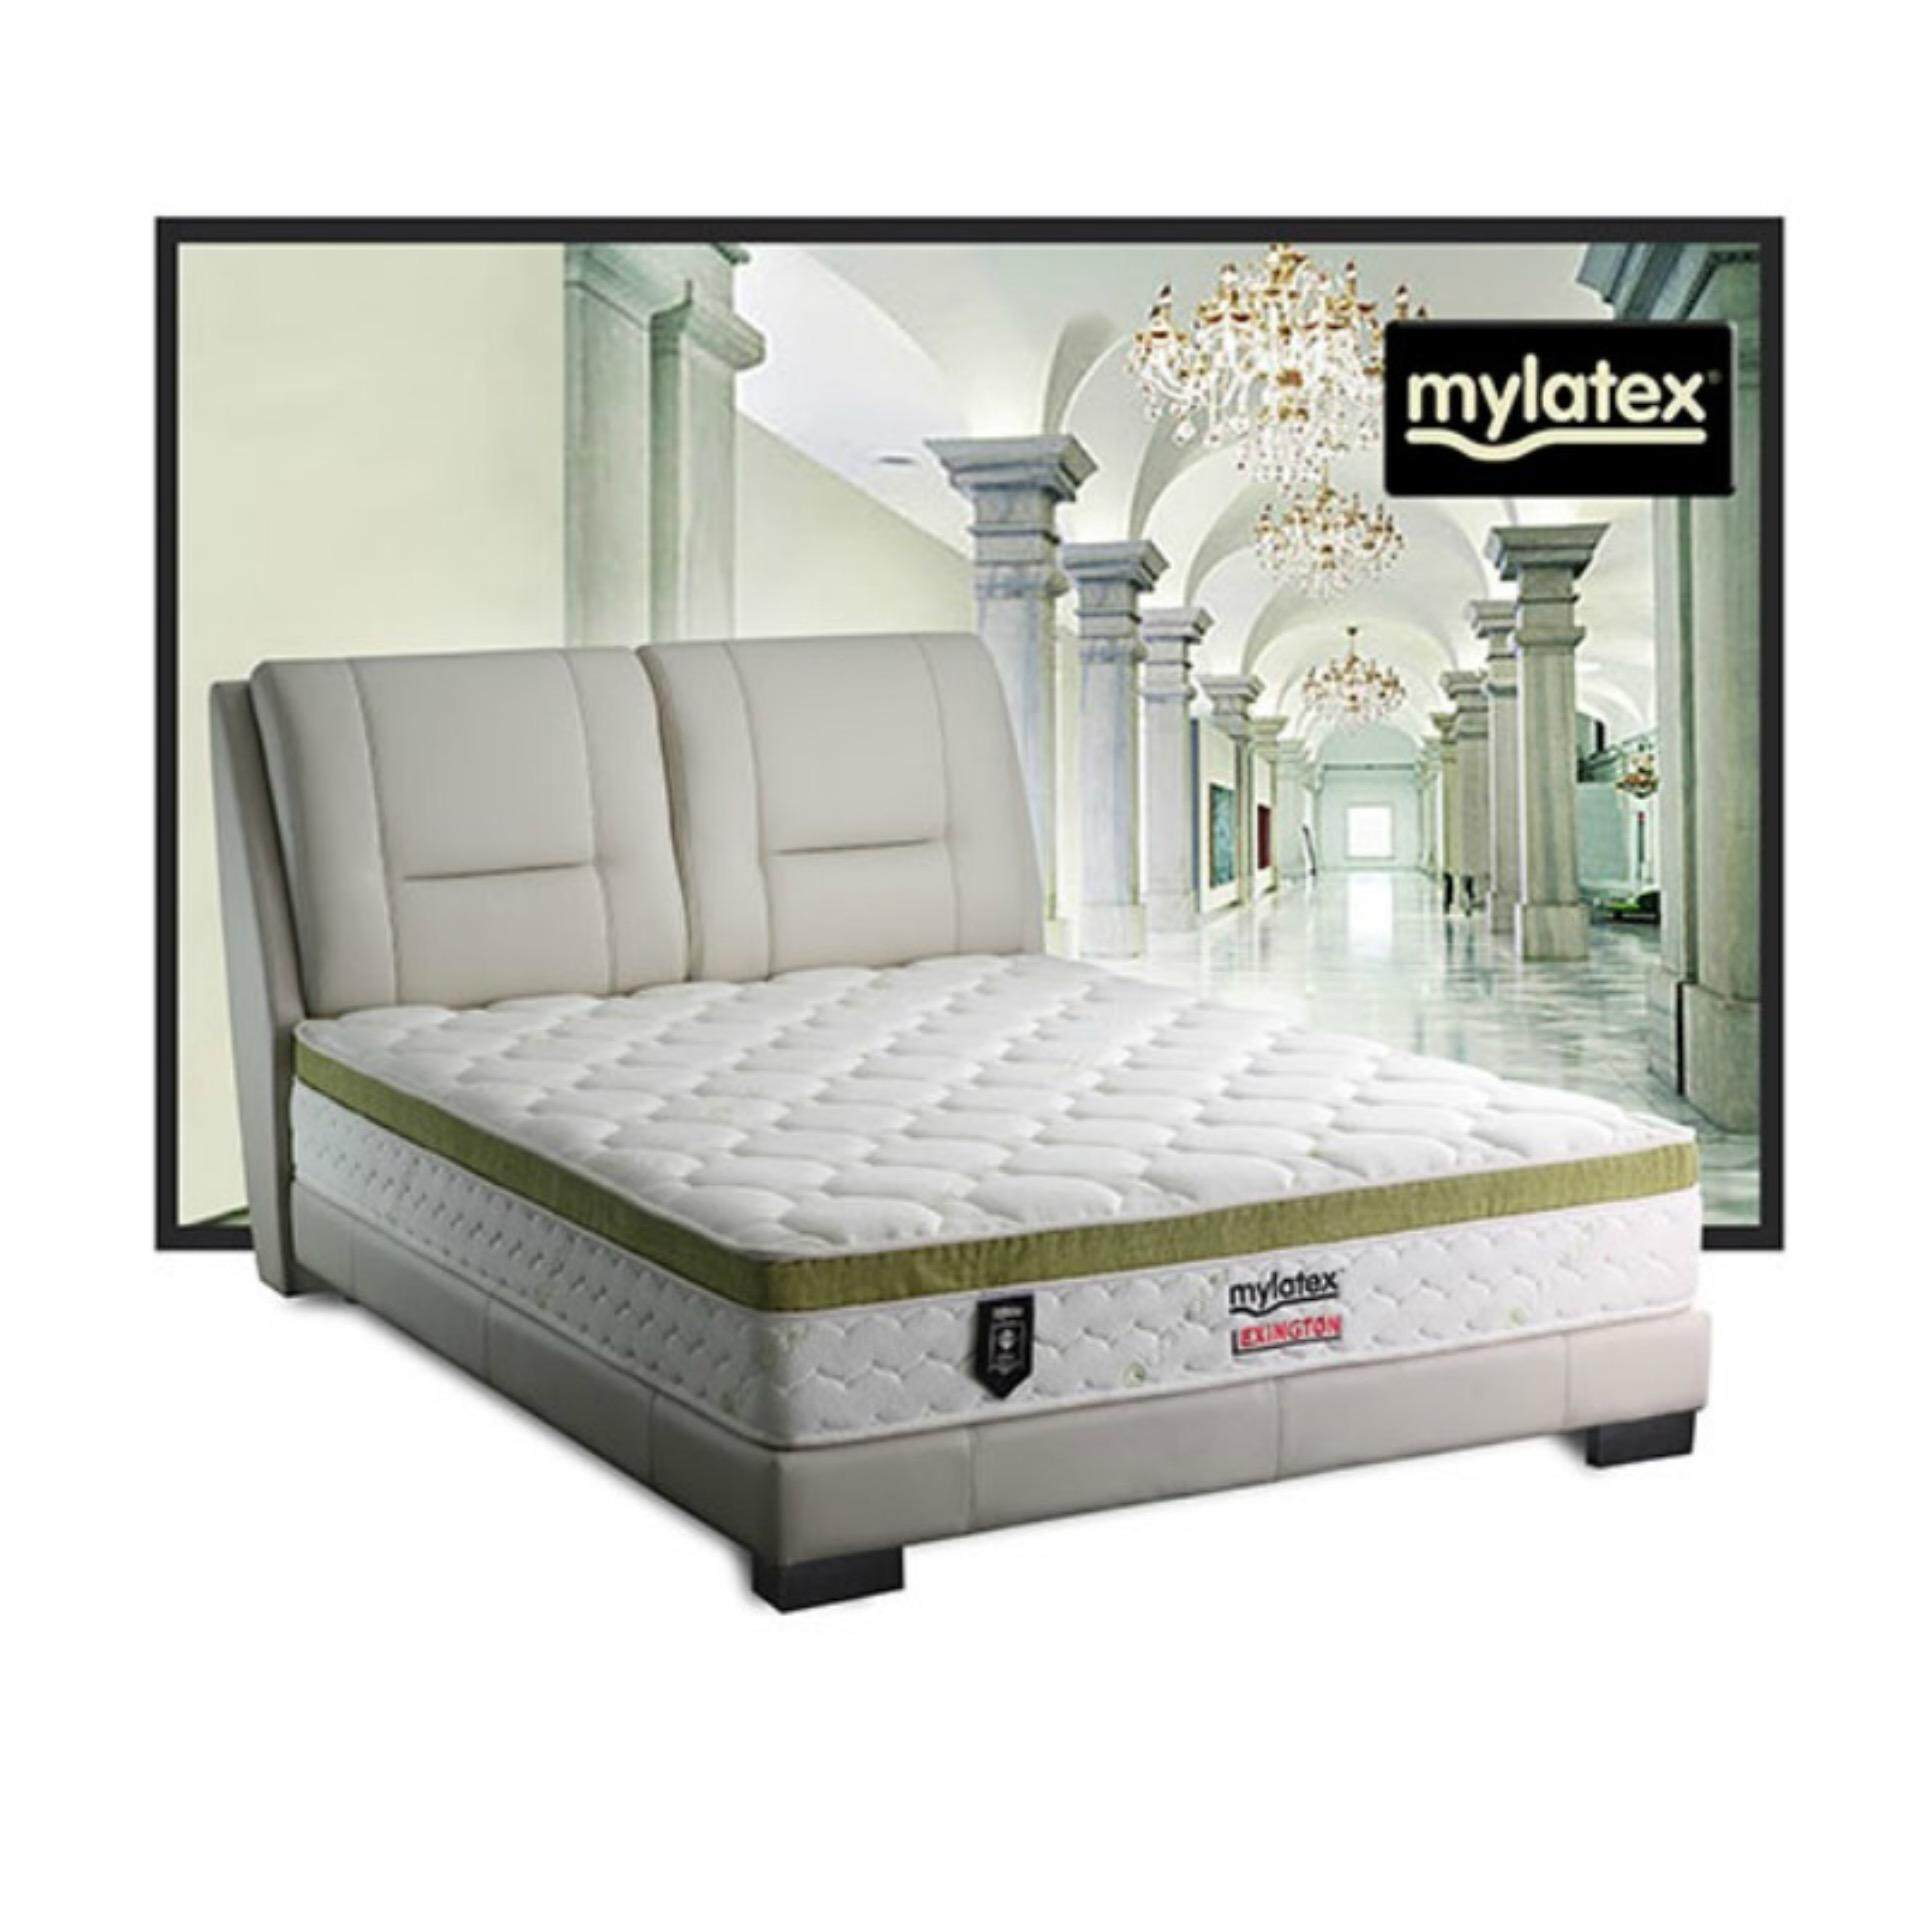 MyLatex Lexington 11 Inches Semi-Firm 100% Natural Latex Chiropractic Mattress (10 Years Warranty)